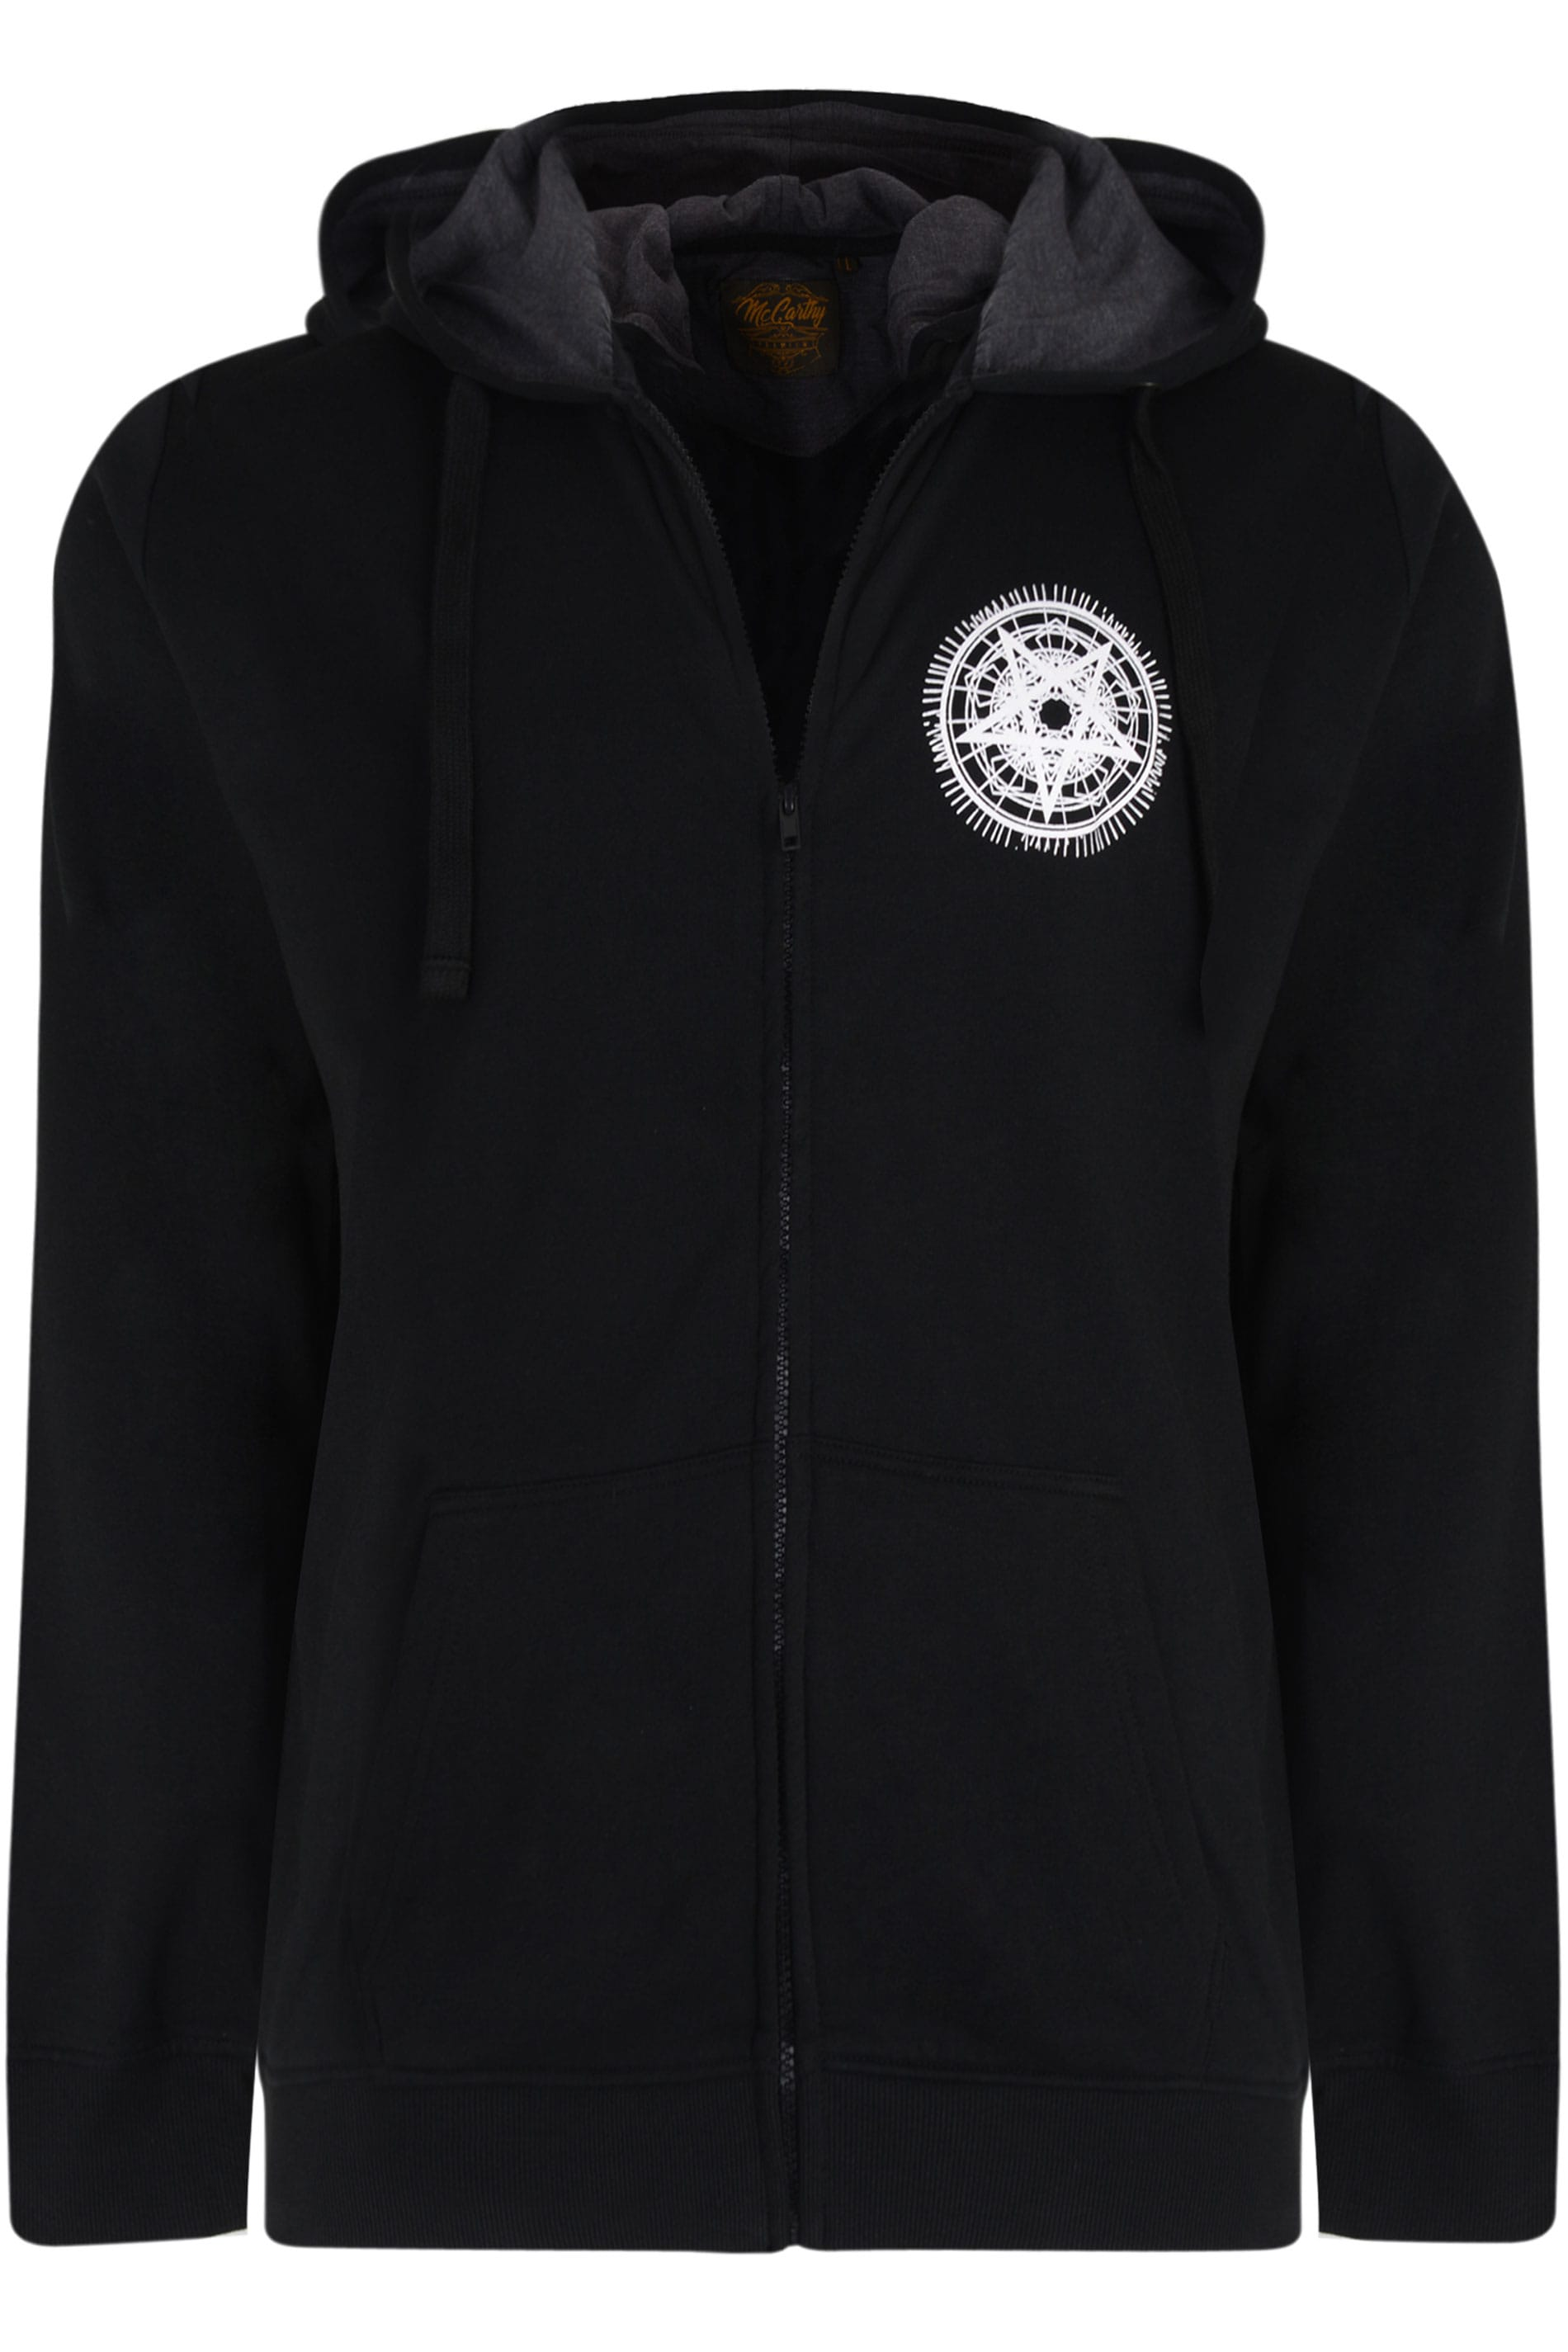 MCCARTHY Black Pentagram Printed Zip Through Hoodie